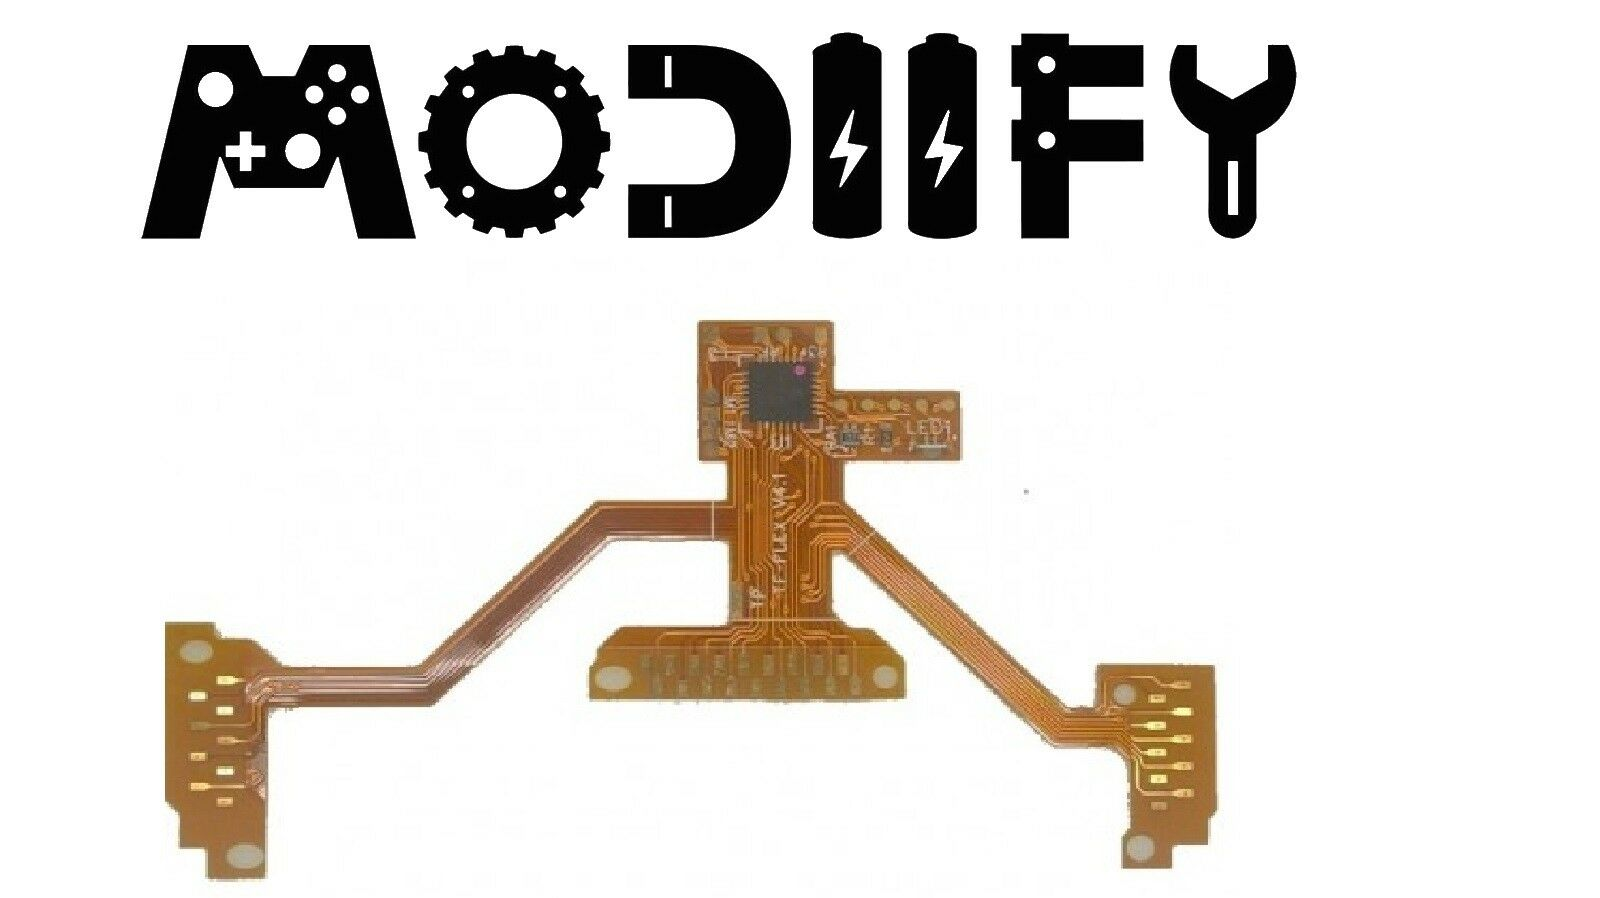 For ps4 rapid fire mod chip V4.1